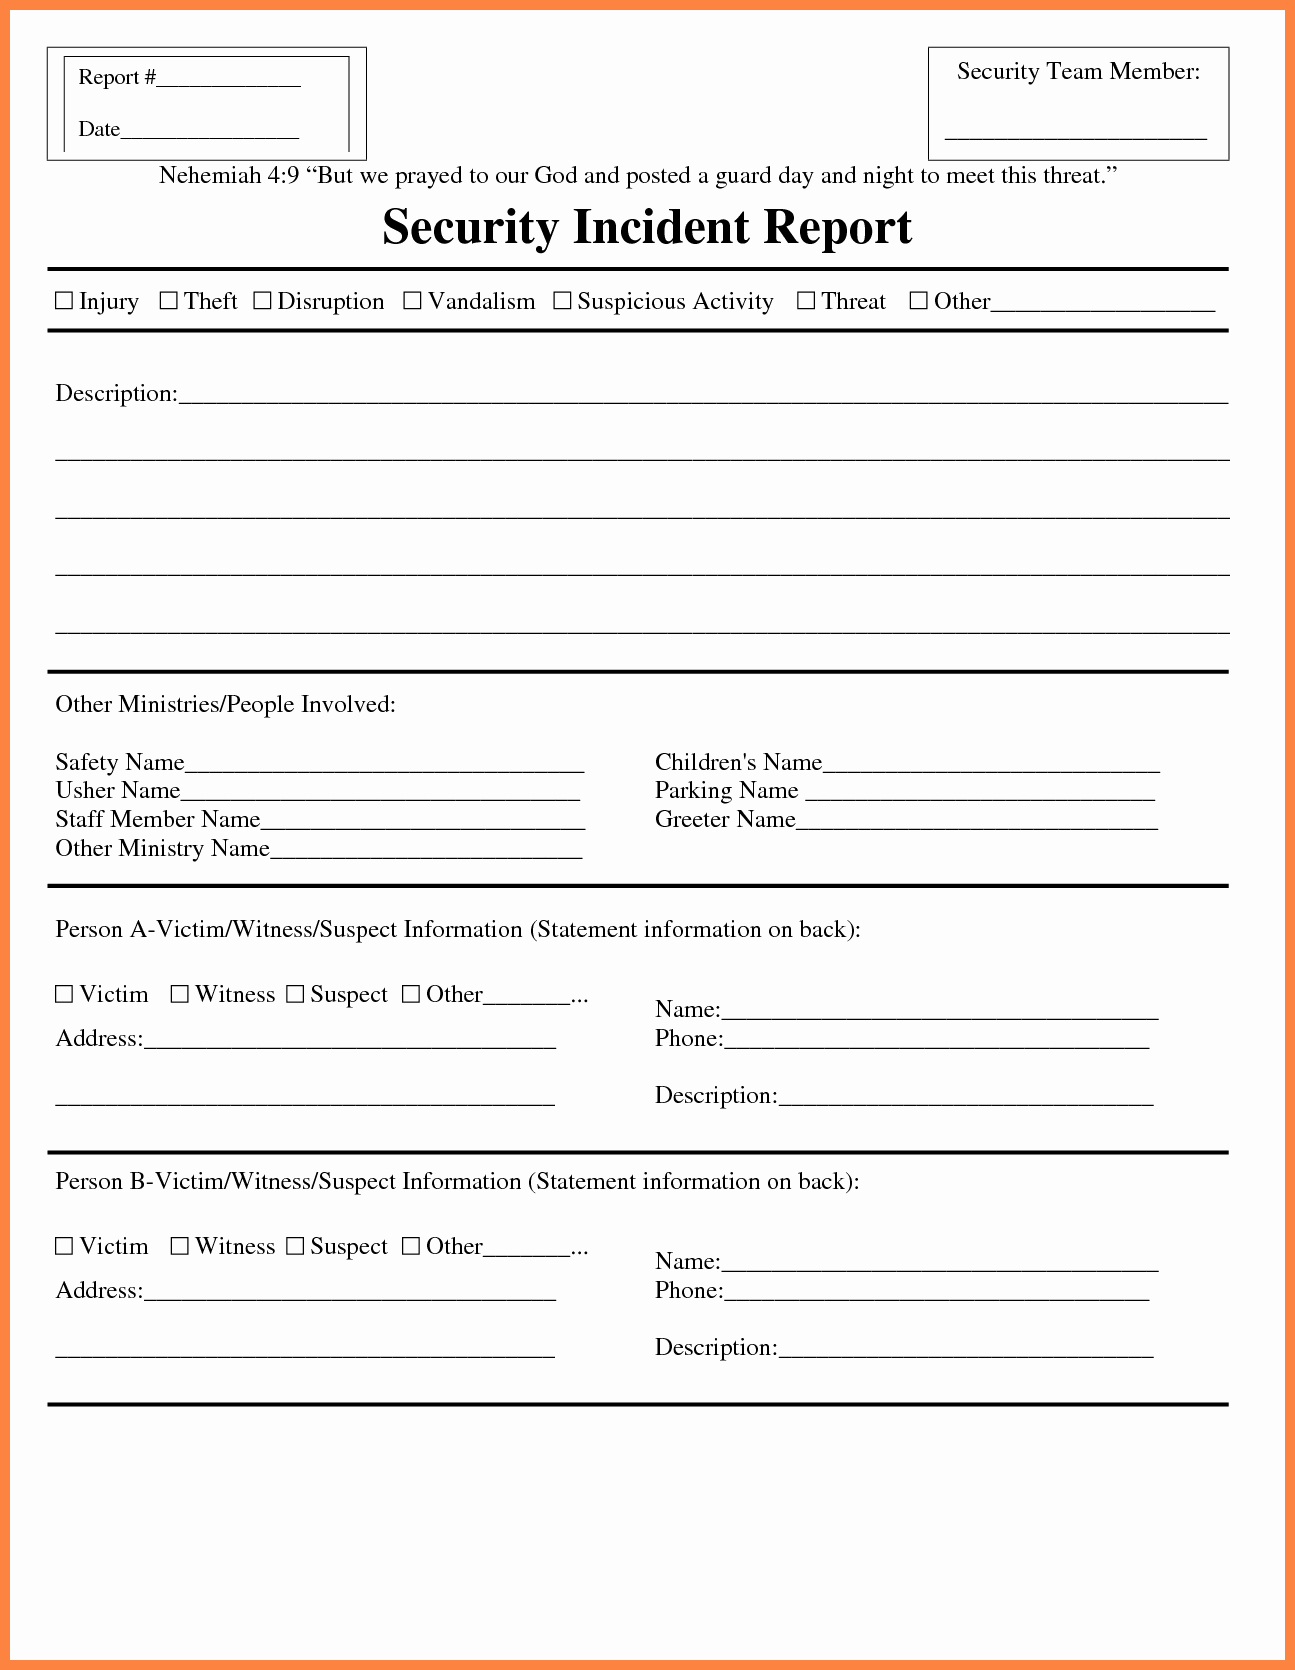 Security Incident Report Template Word Best Of 12 Information Technology Incident Report Template